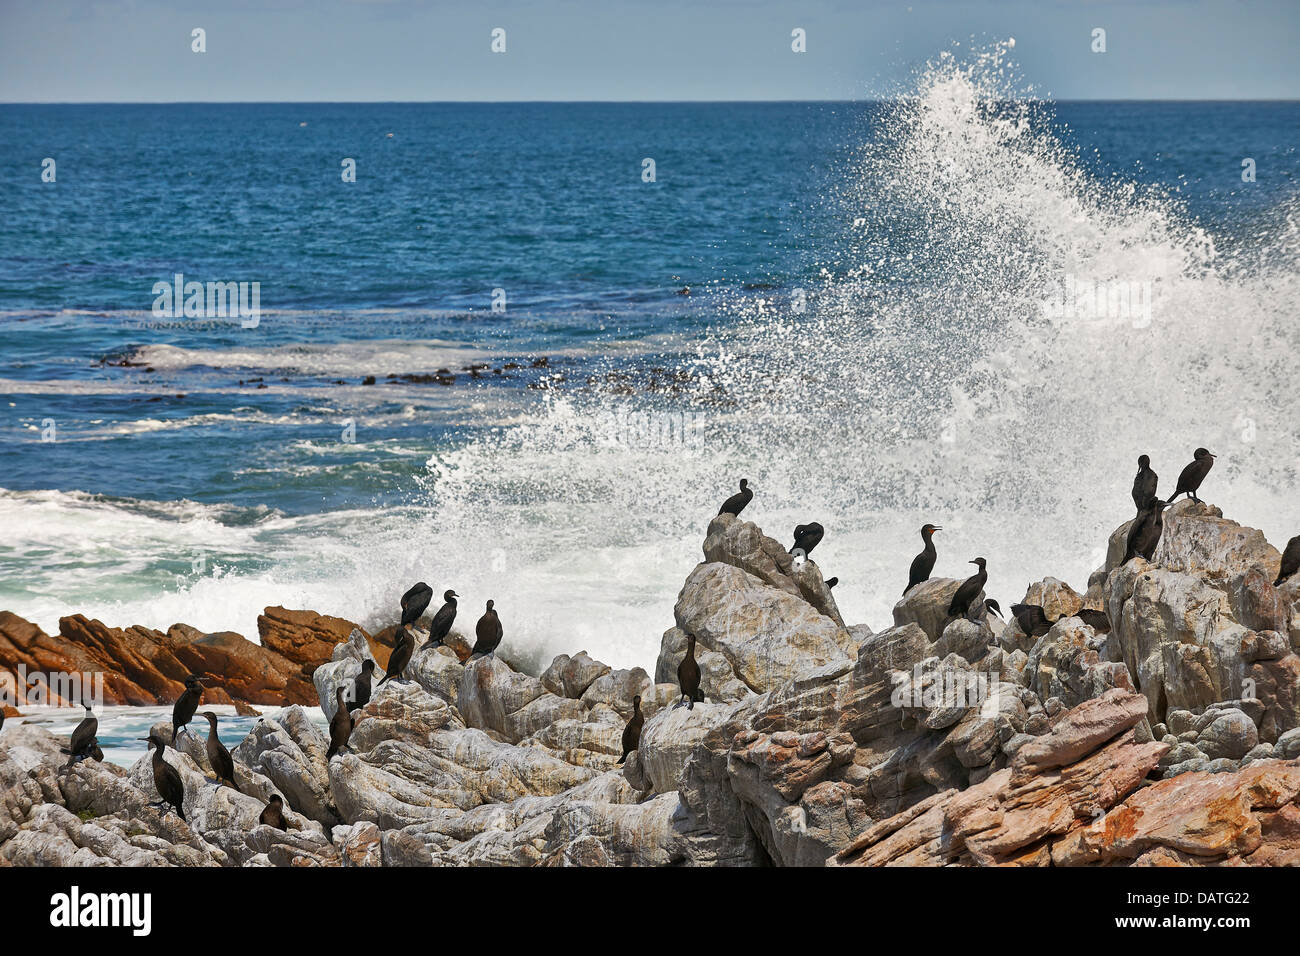 waves breaking behind a colony of Cormorant, Betty's Bay, Cape Town, Western Cape, South Africa - Stock Image